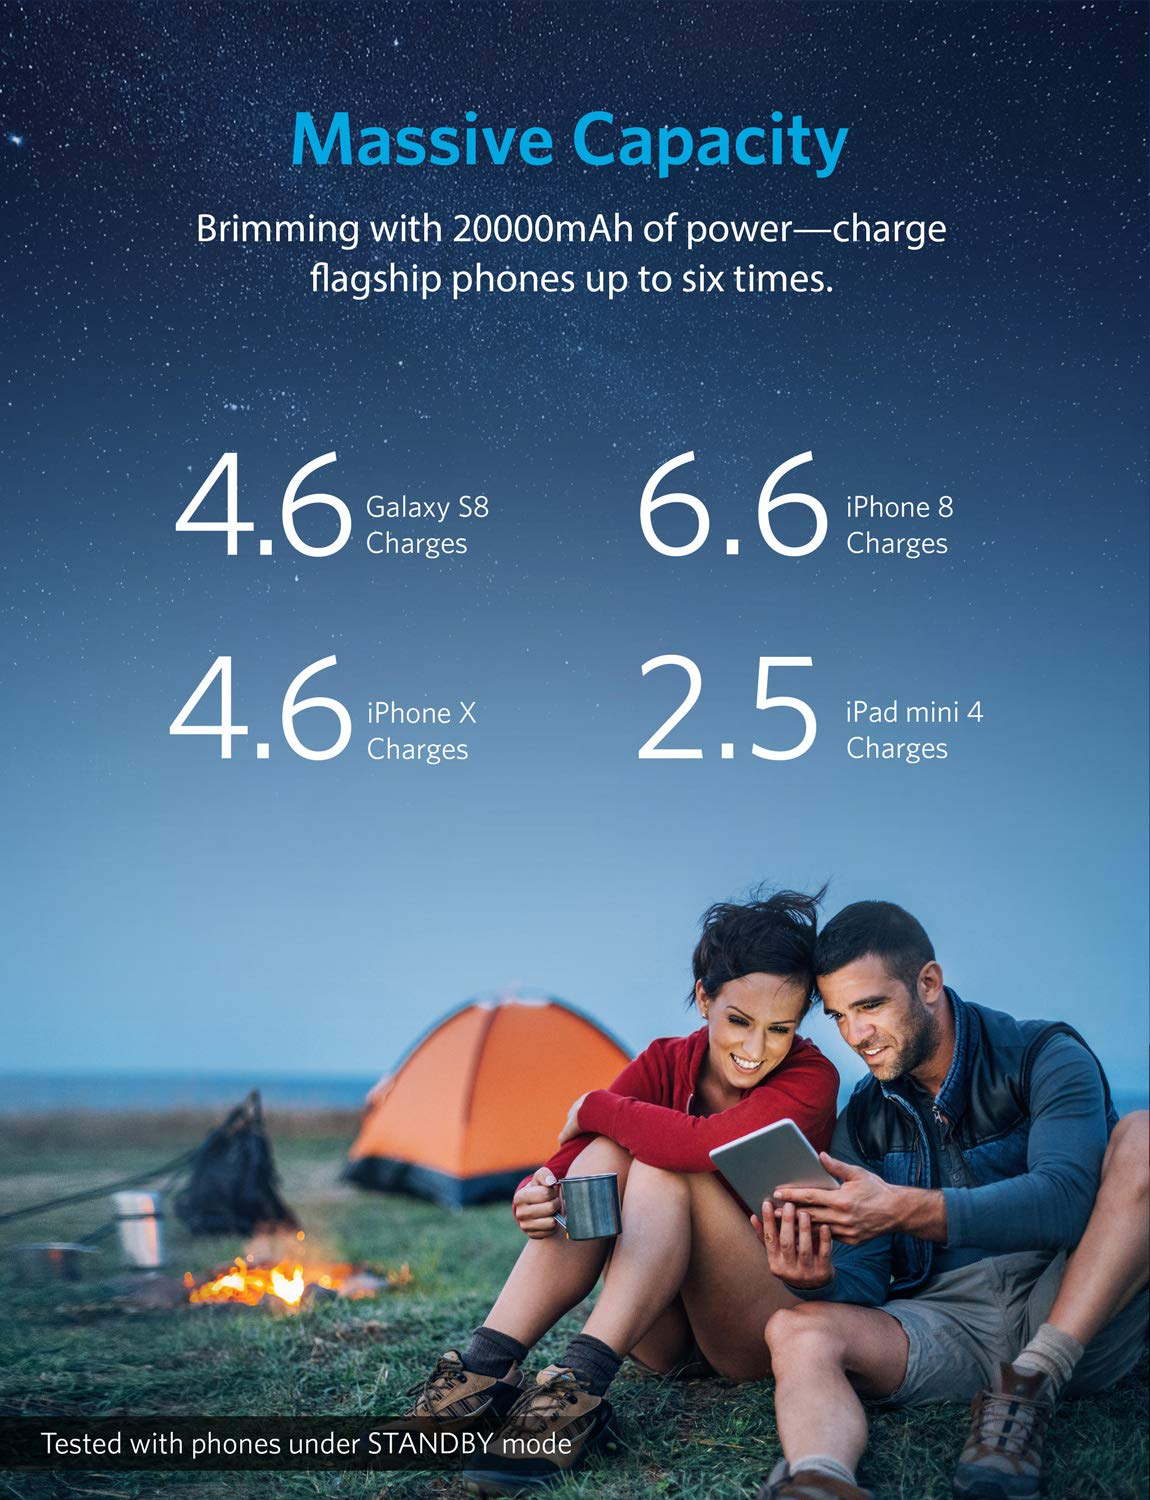 Anker PowerCore II 20000, 20100mAh Portable Charger with Dual USB Ports, PowerIQ 2.0 (up to 18W Output) Power Bank, Fast Charging for iPhone, Samsung and More (Compatible with Quick Charge Devices) by Anker (Image #3)